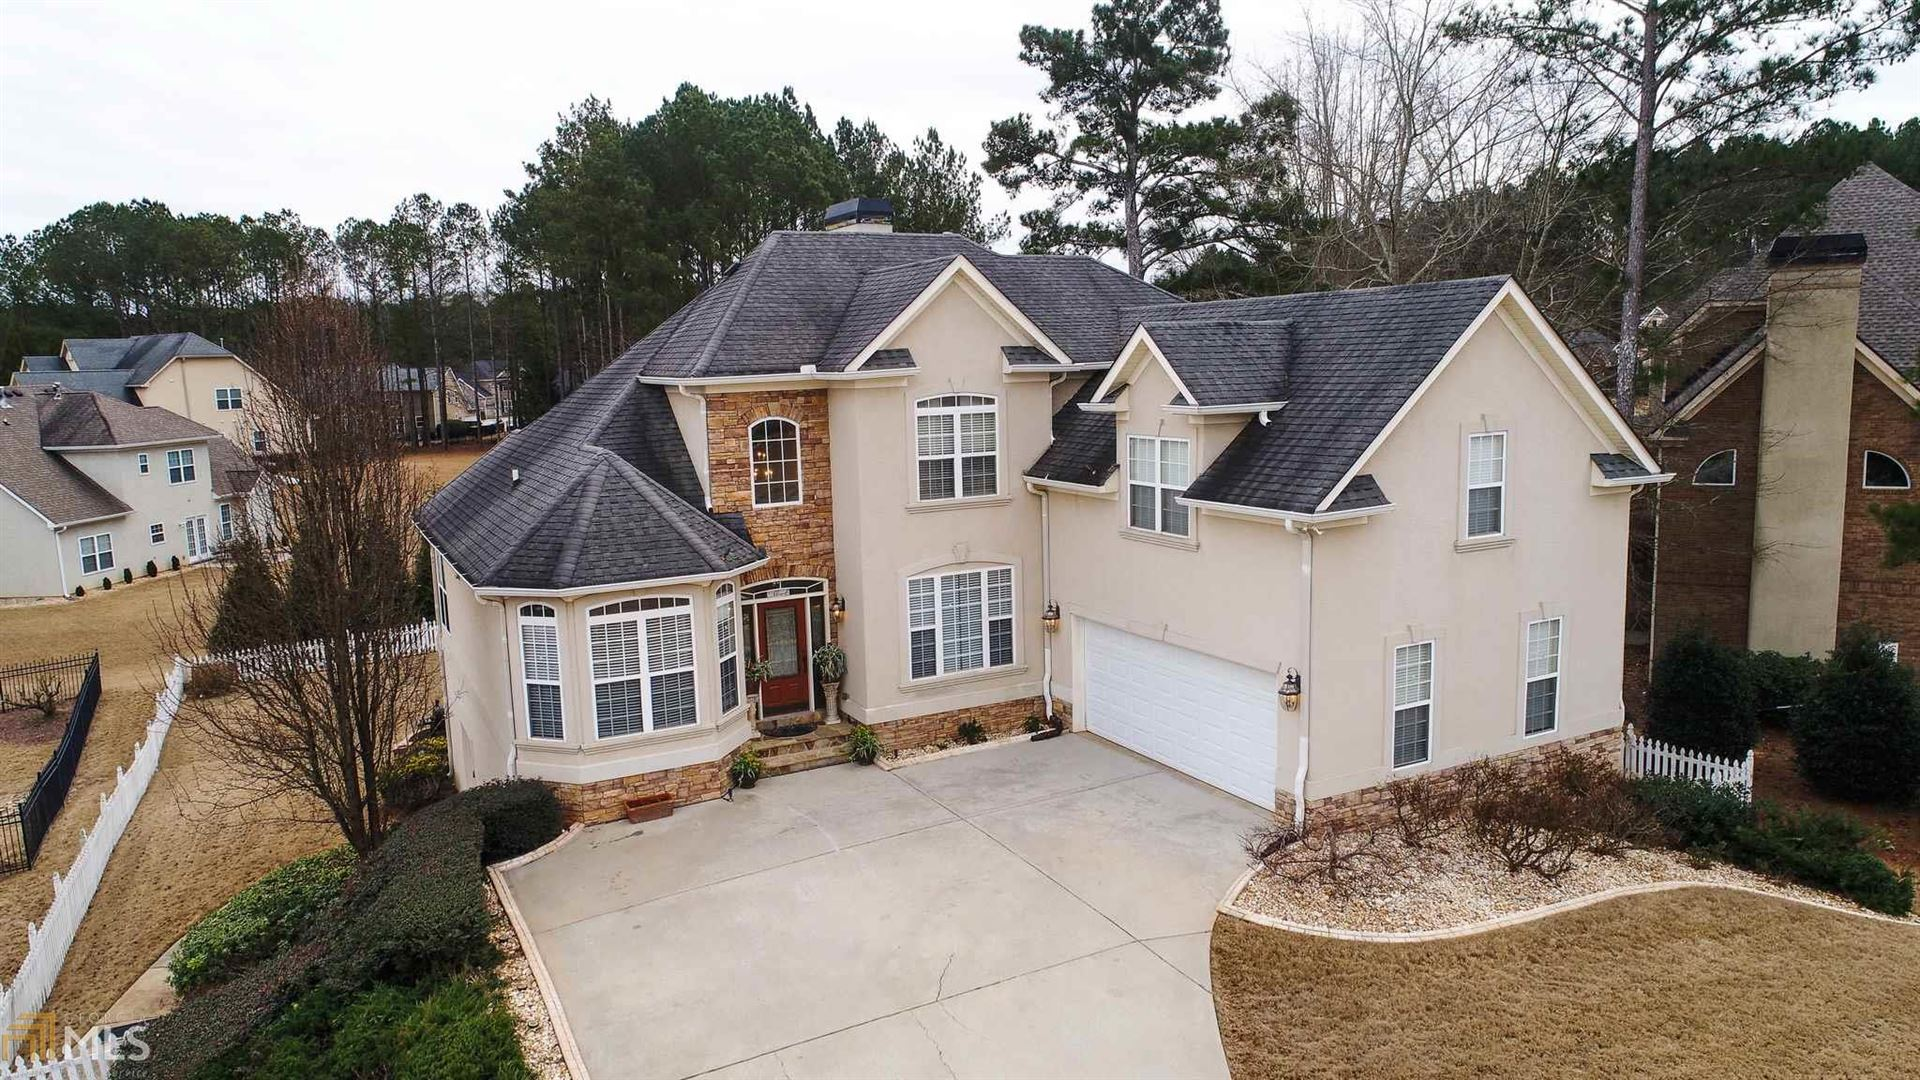 1020 Eagles Brooke Dr, Locust Grove, GA 30248 - MLS#: 8896908